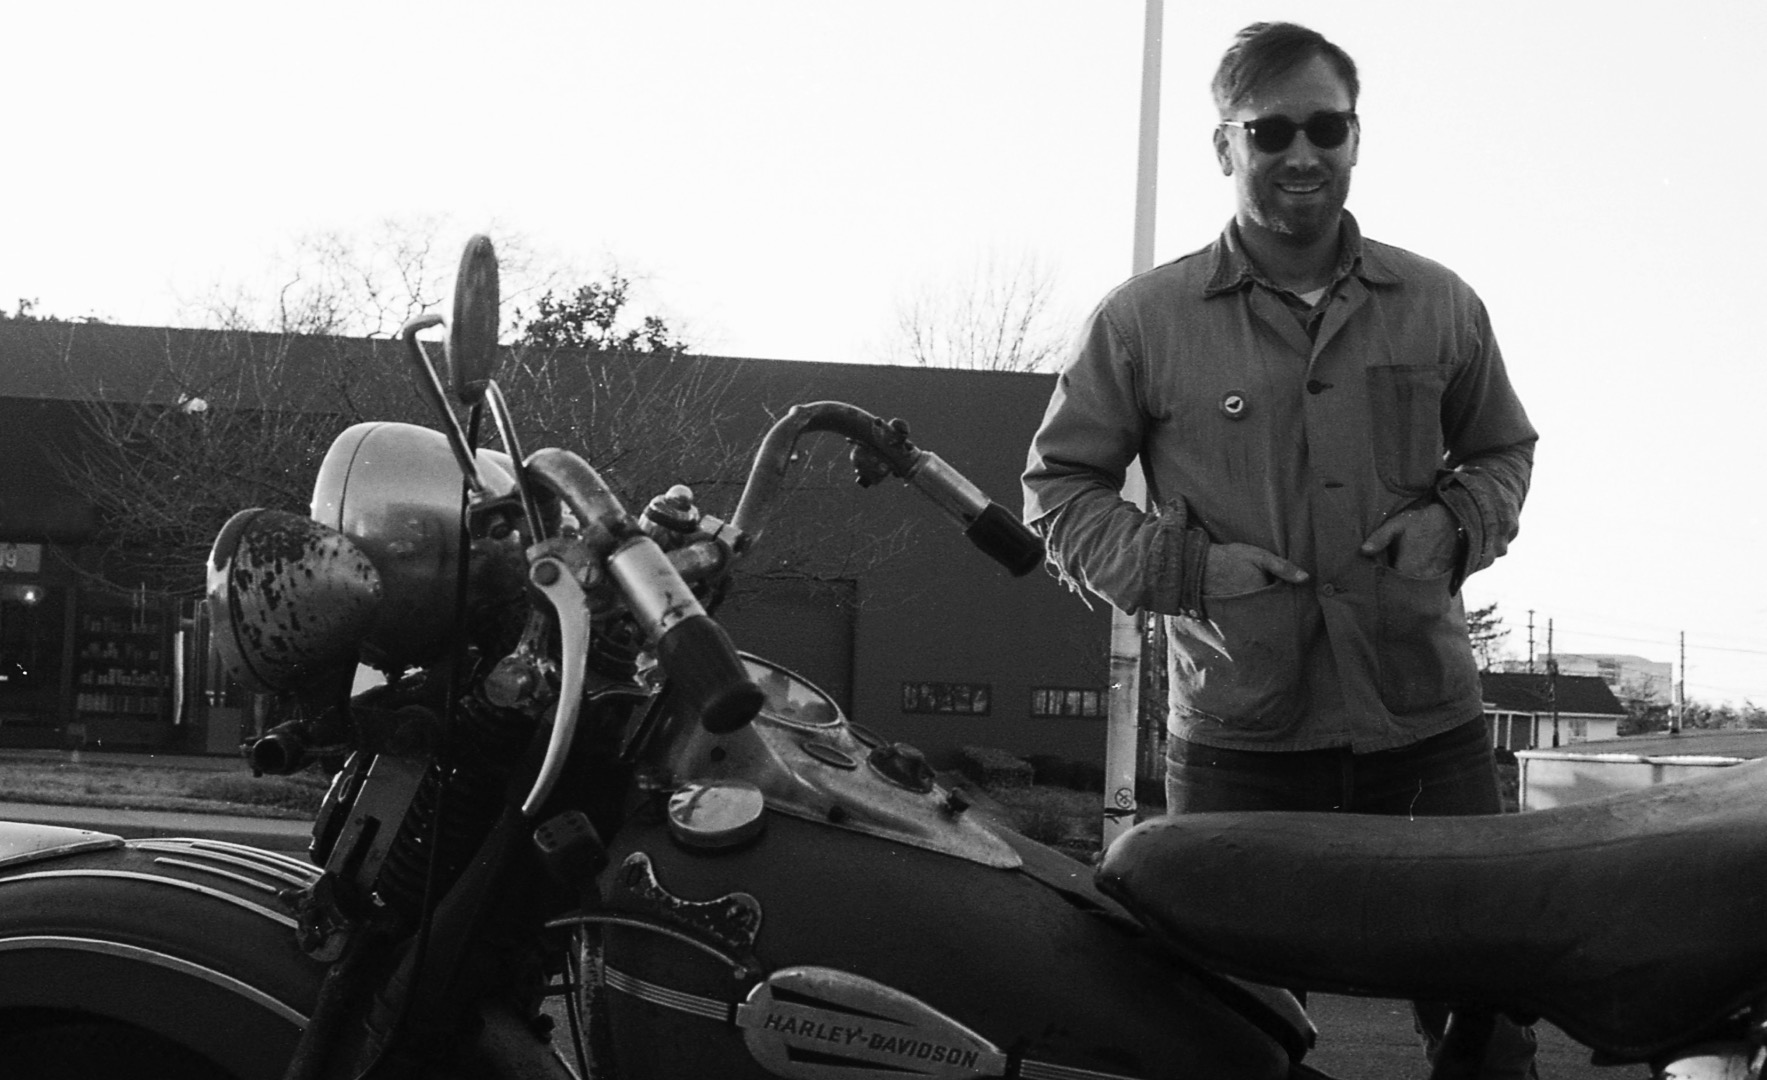 The Black Keys' Dan Auerbach's Vintage Harley-Davidson Collection